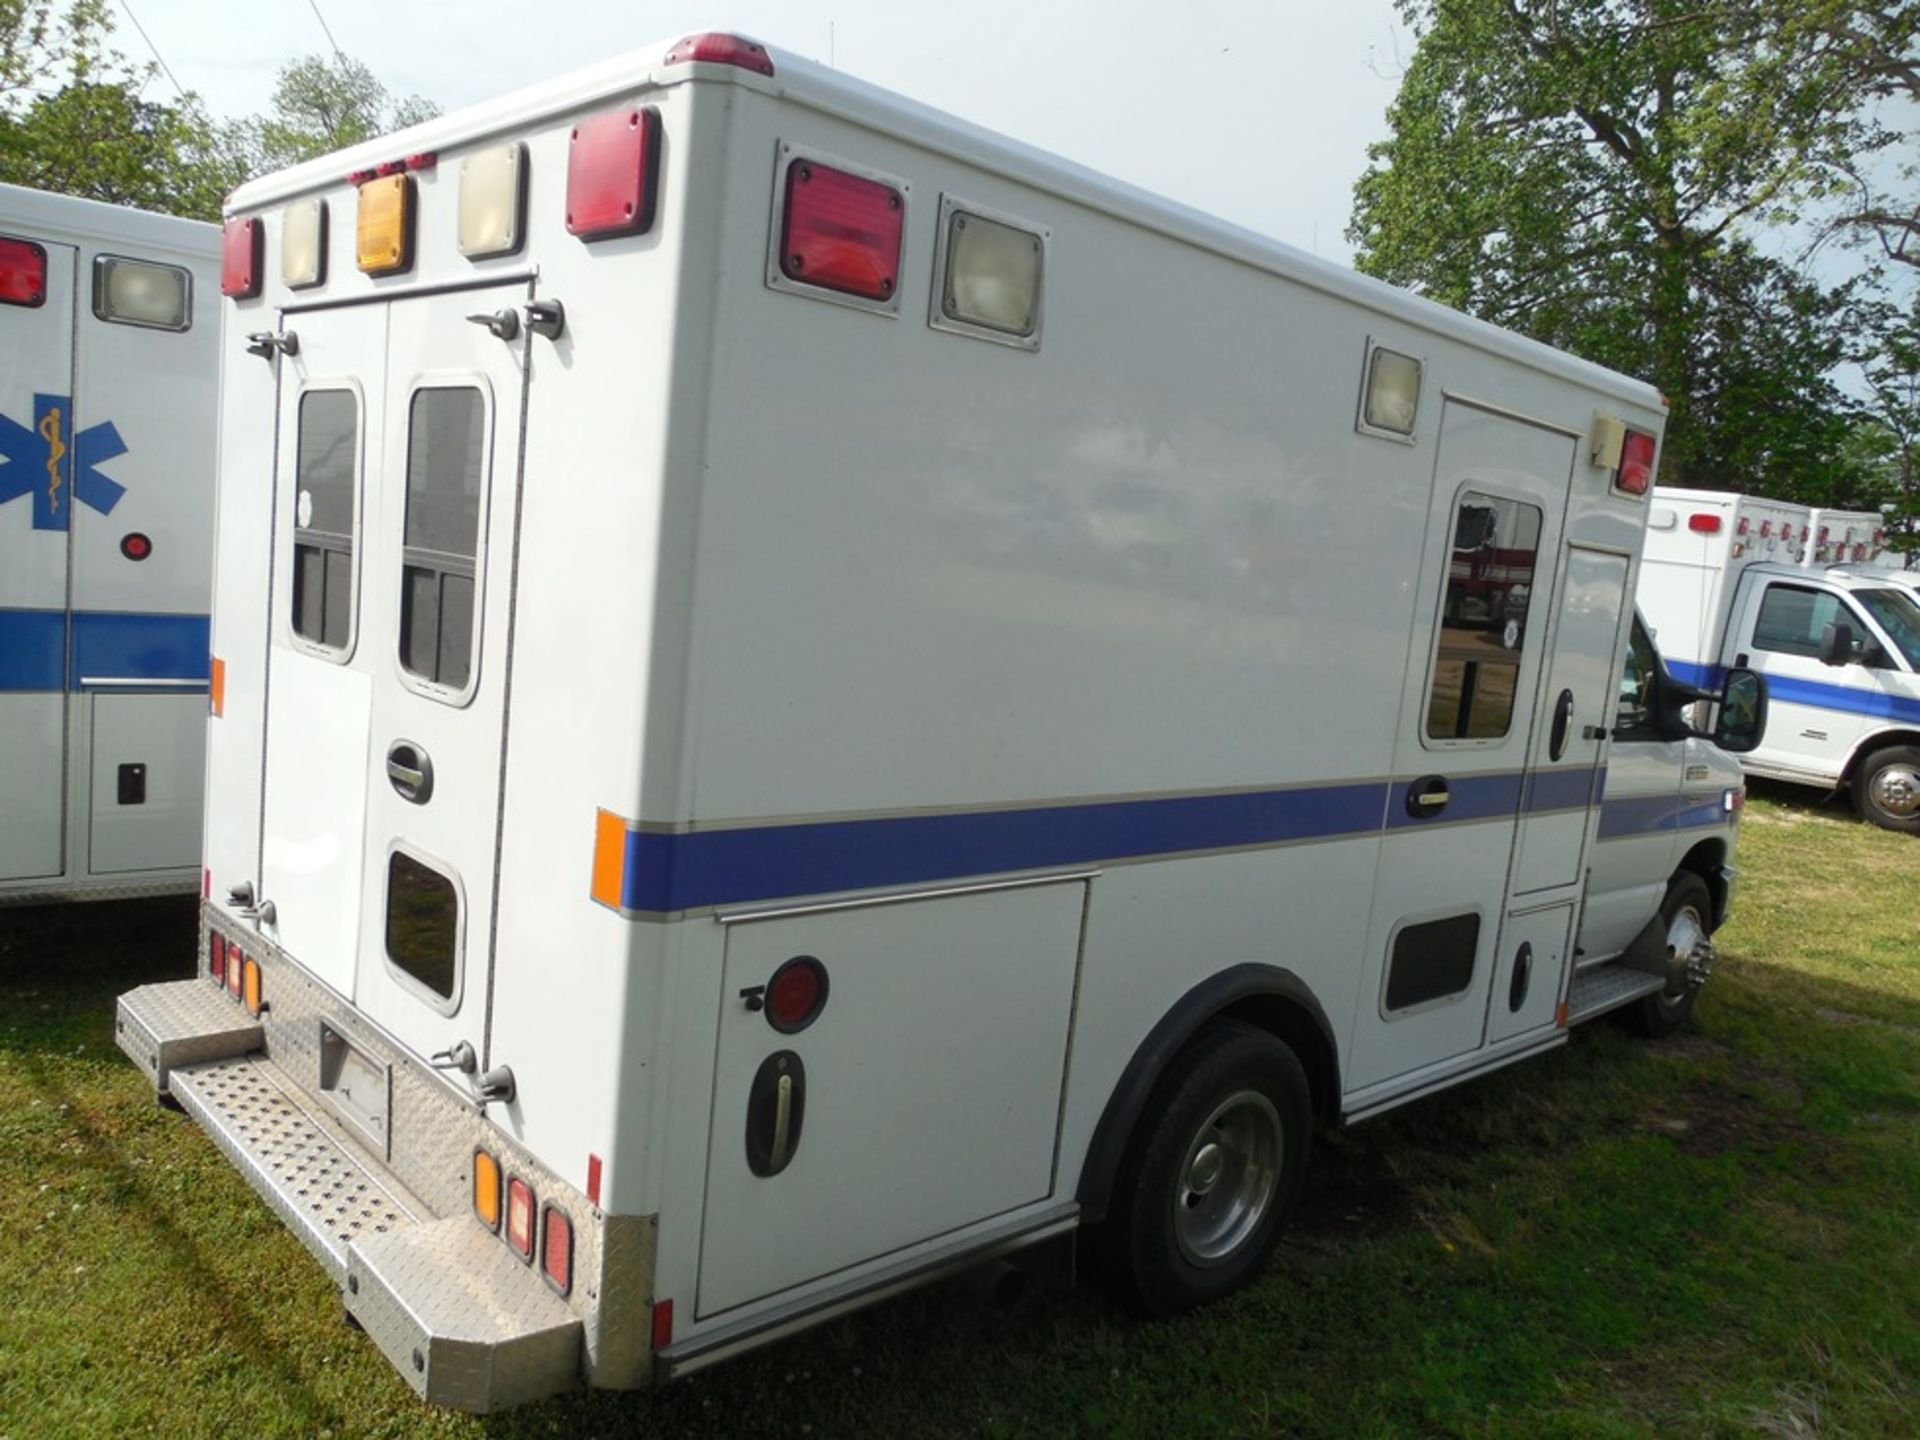 2010 Ford E350 Wheel Coach ambulance, dsl, 61,572 miles, vin# 1FDWE3FP2ADA14523 - Image 4 of 8